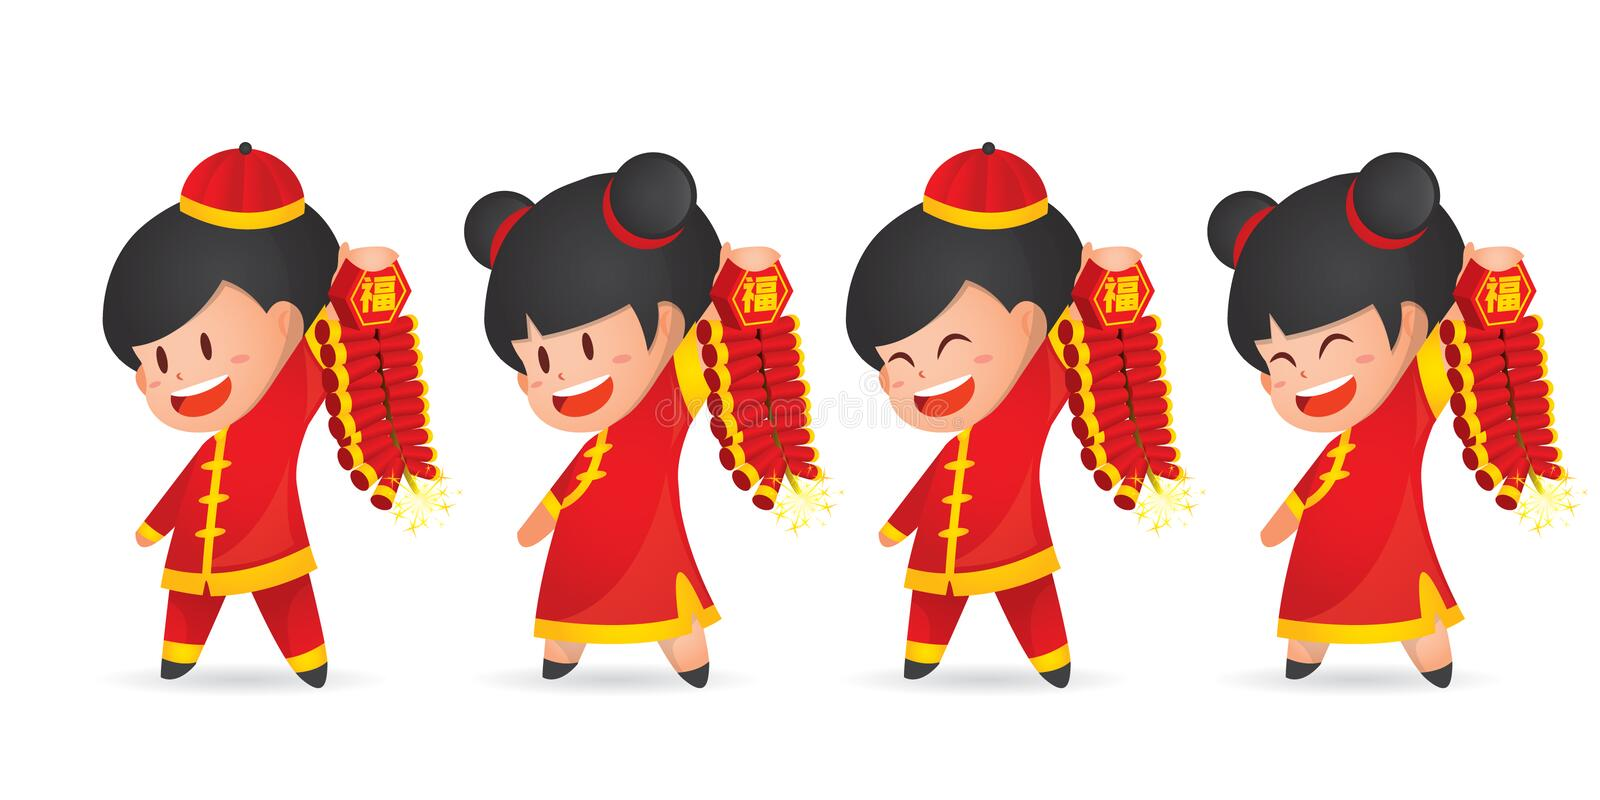 Cute cartoon Chinese New Year boy and girl having fun with firecracker, isolated on white. royalty free illustration